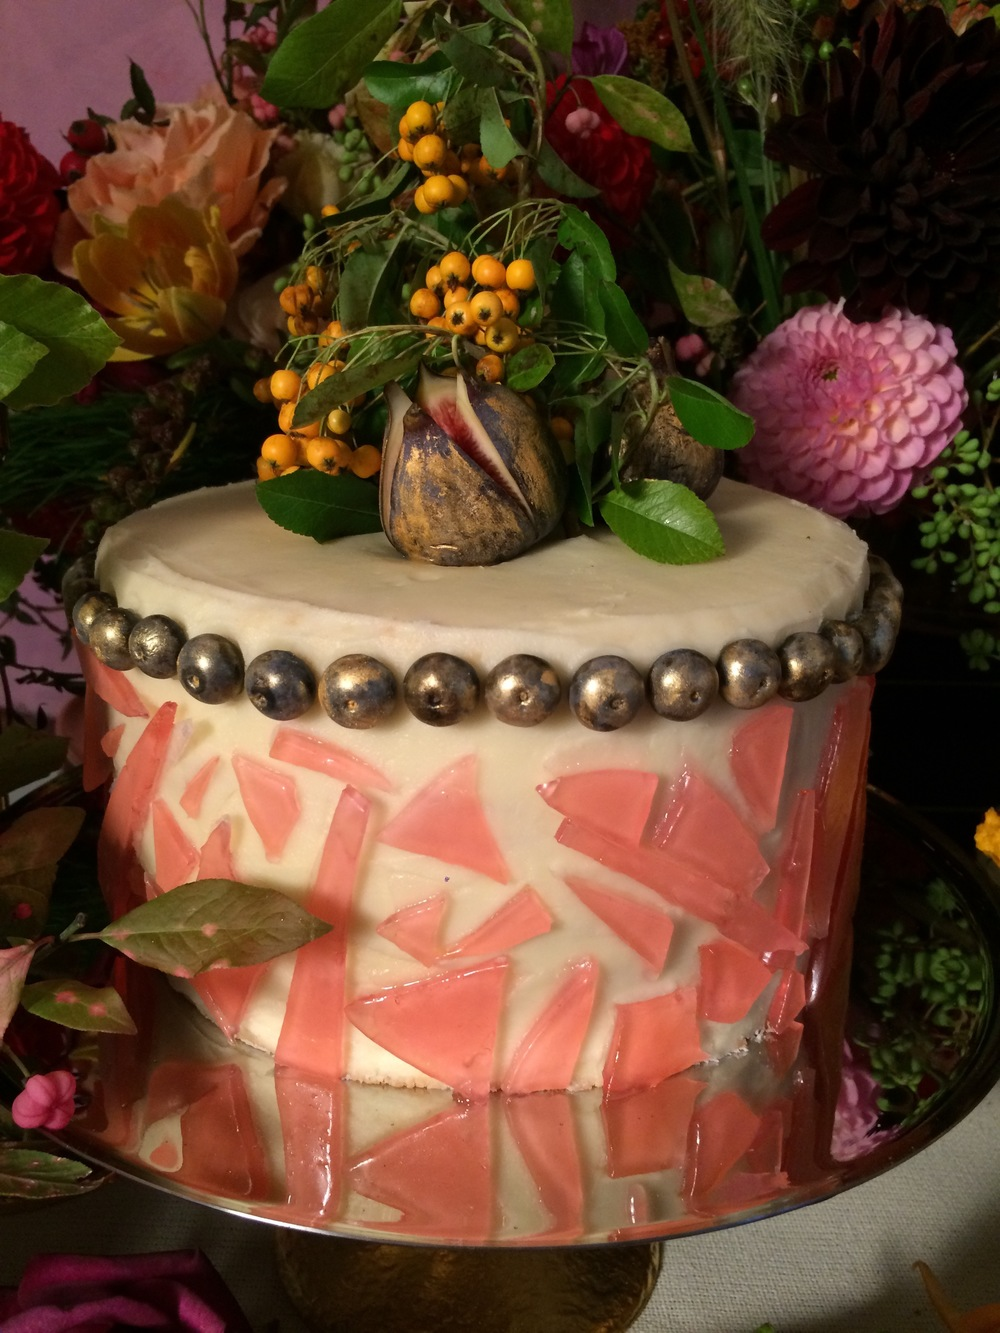 Almond Sponge & Vanilla Buttercream with Gold Blueberries with Pink Sugar Glass & Gold Figs